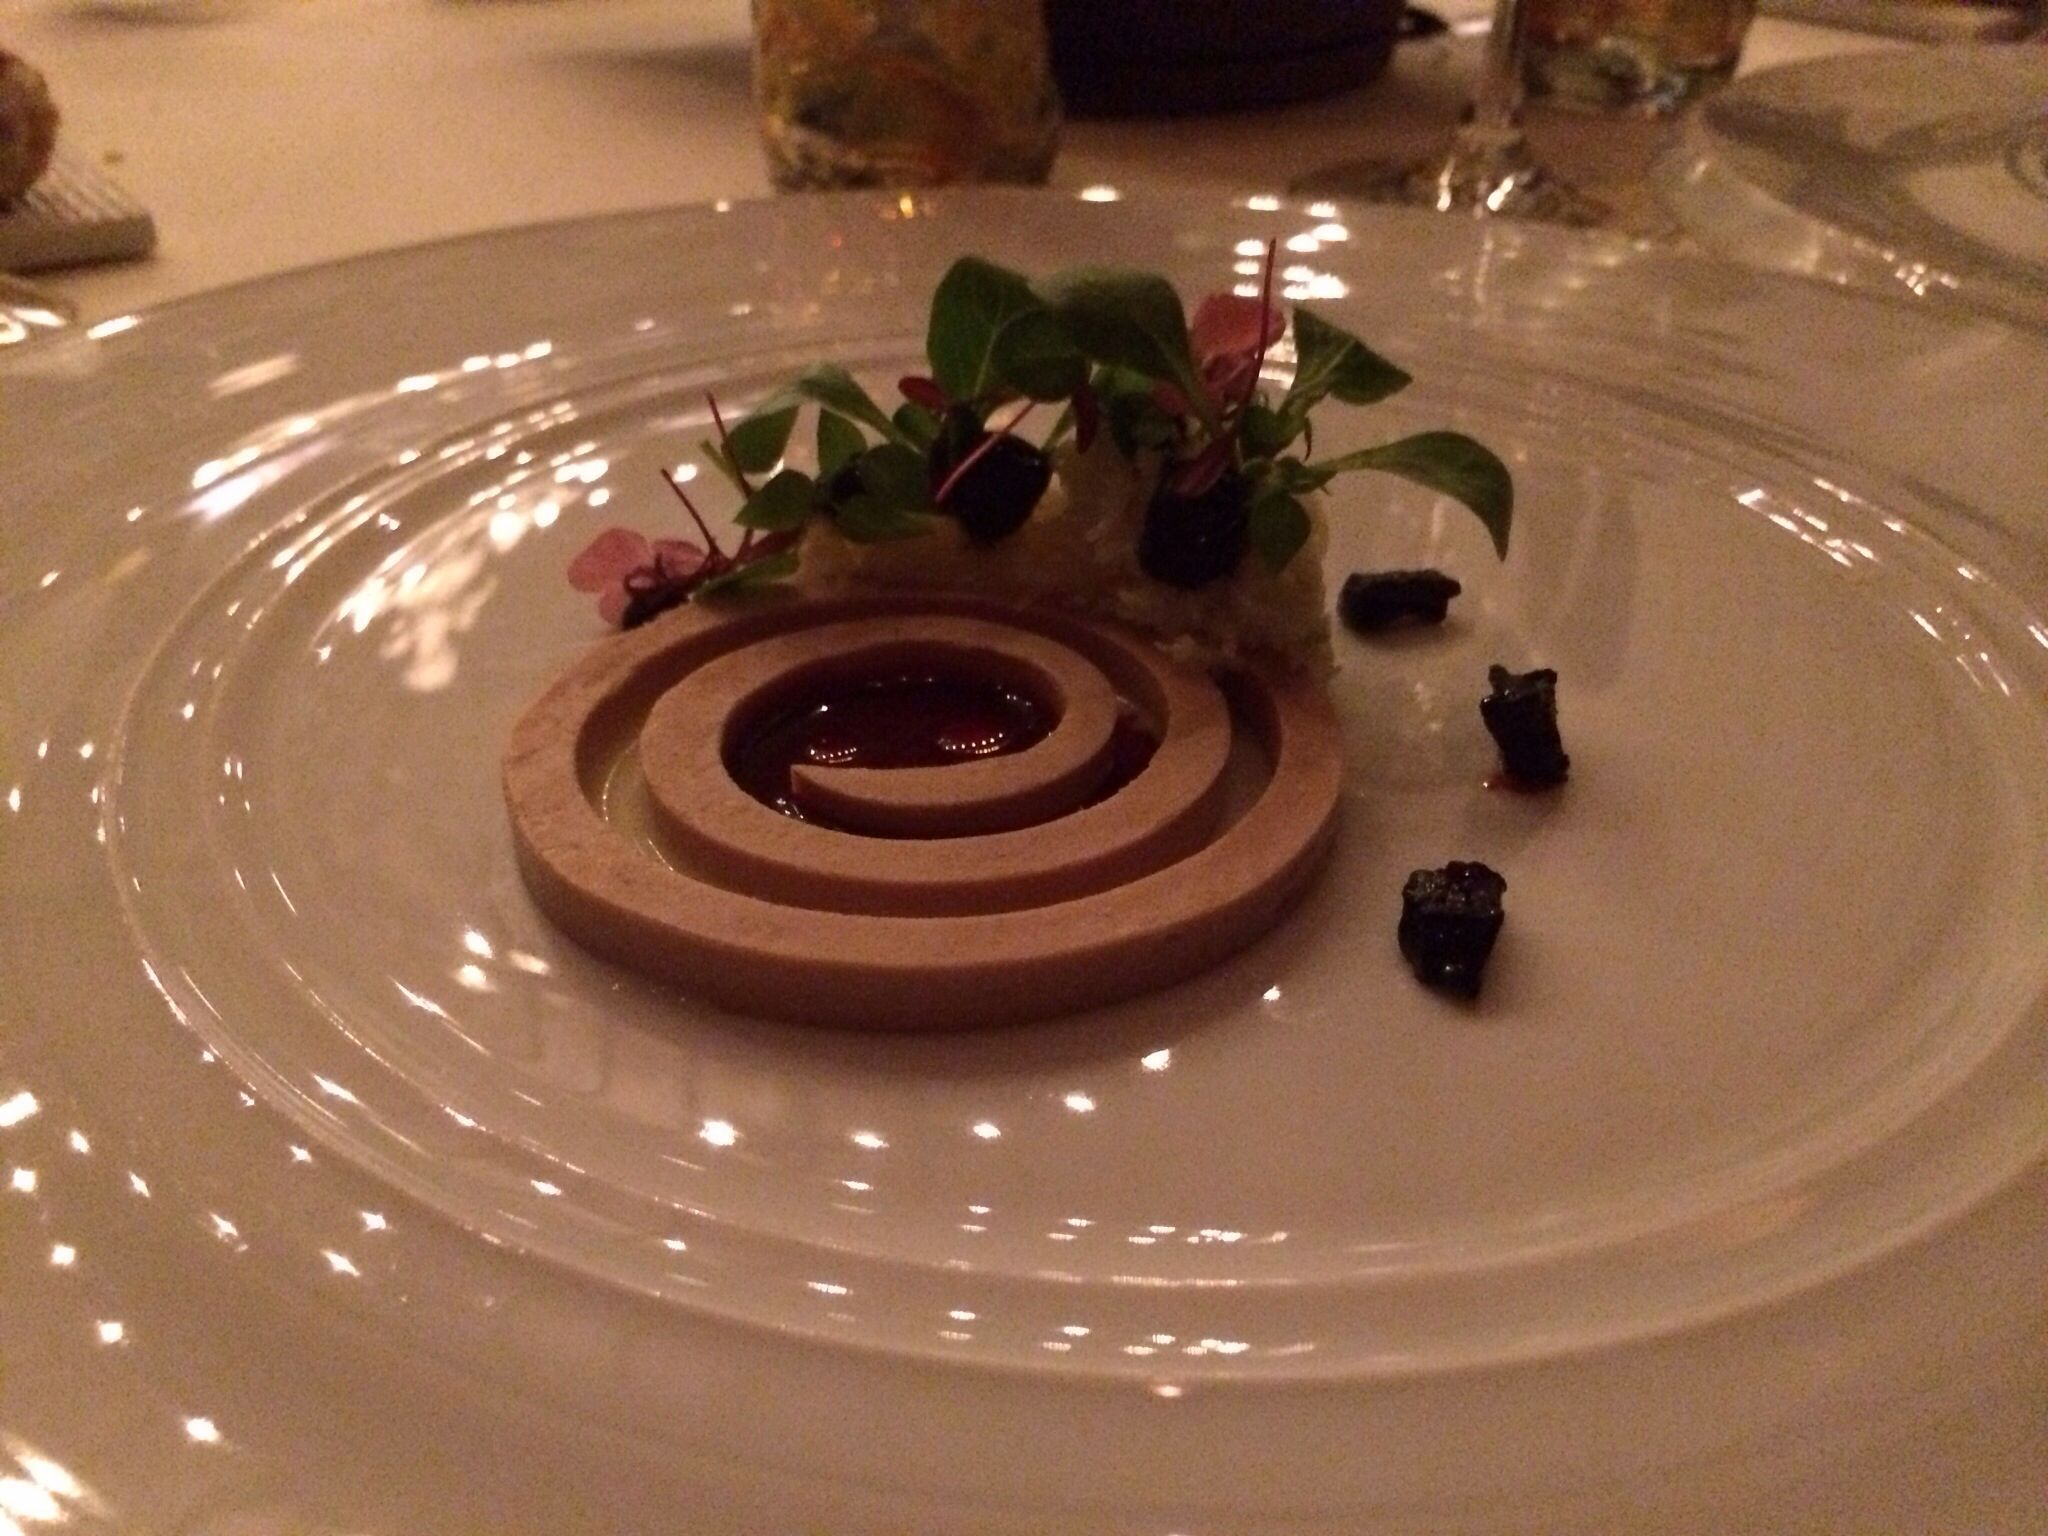 Duck Liver with North Sea crab, black olives and fermented jus from red cabbage @ De Librije in Zwolle, NL (3*)